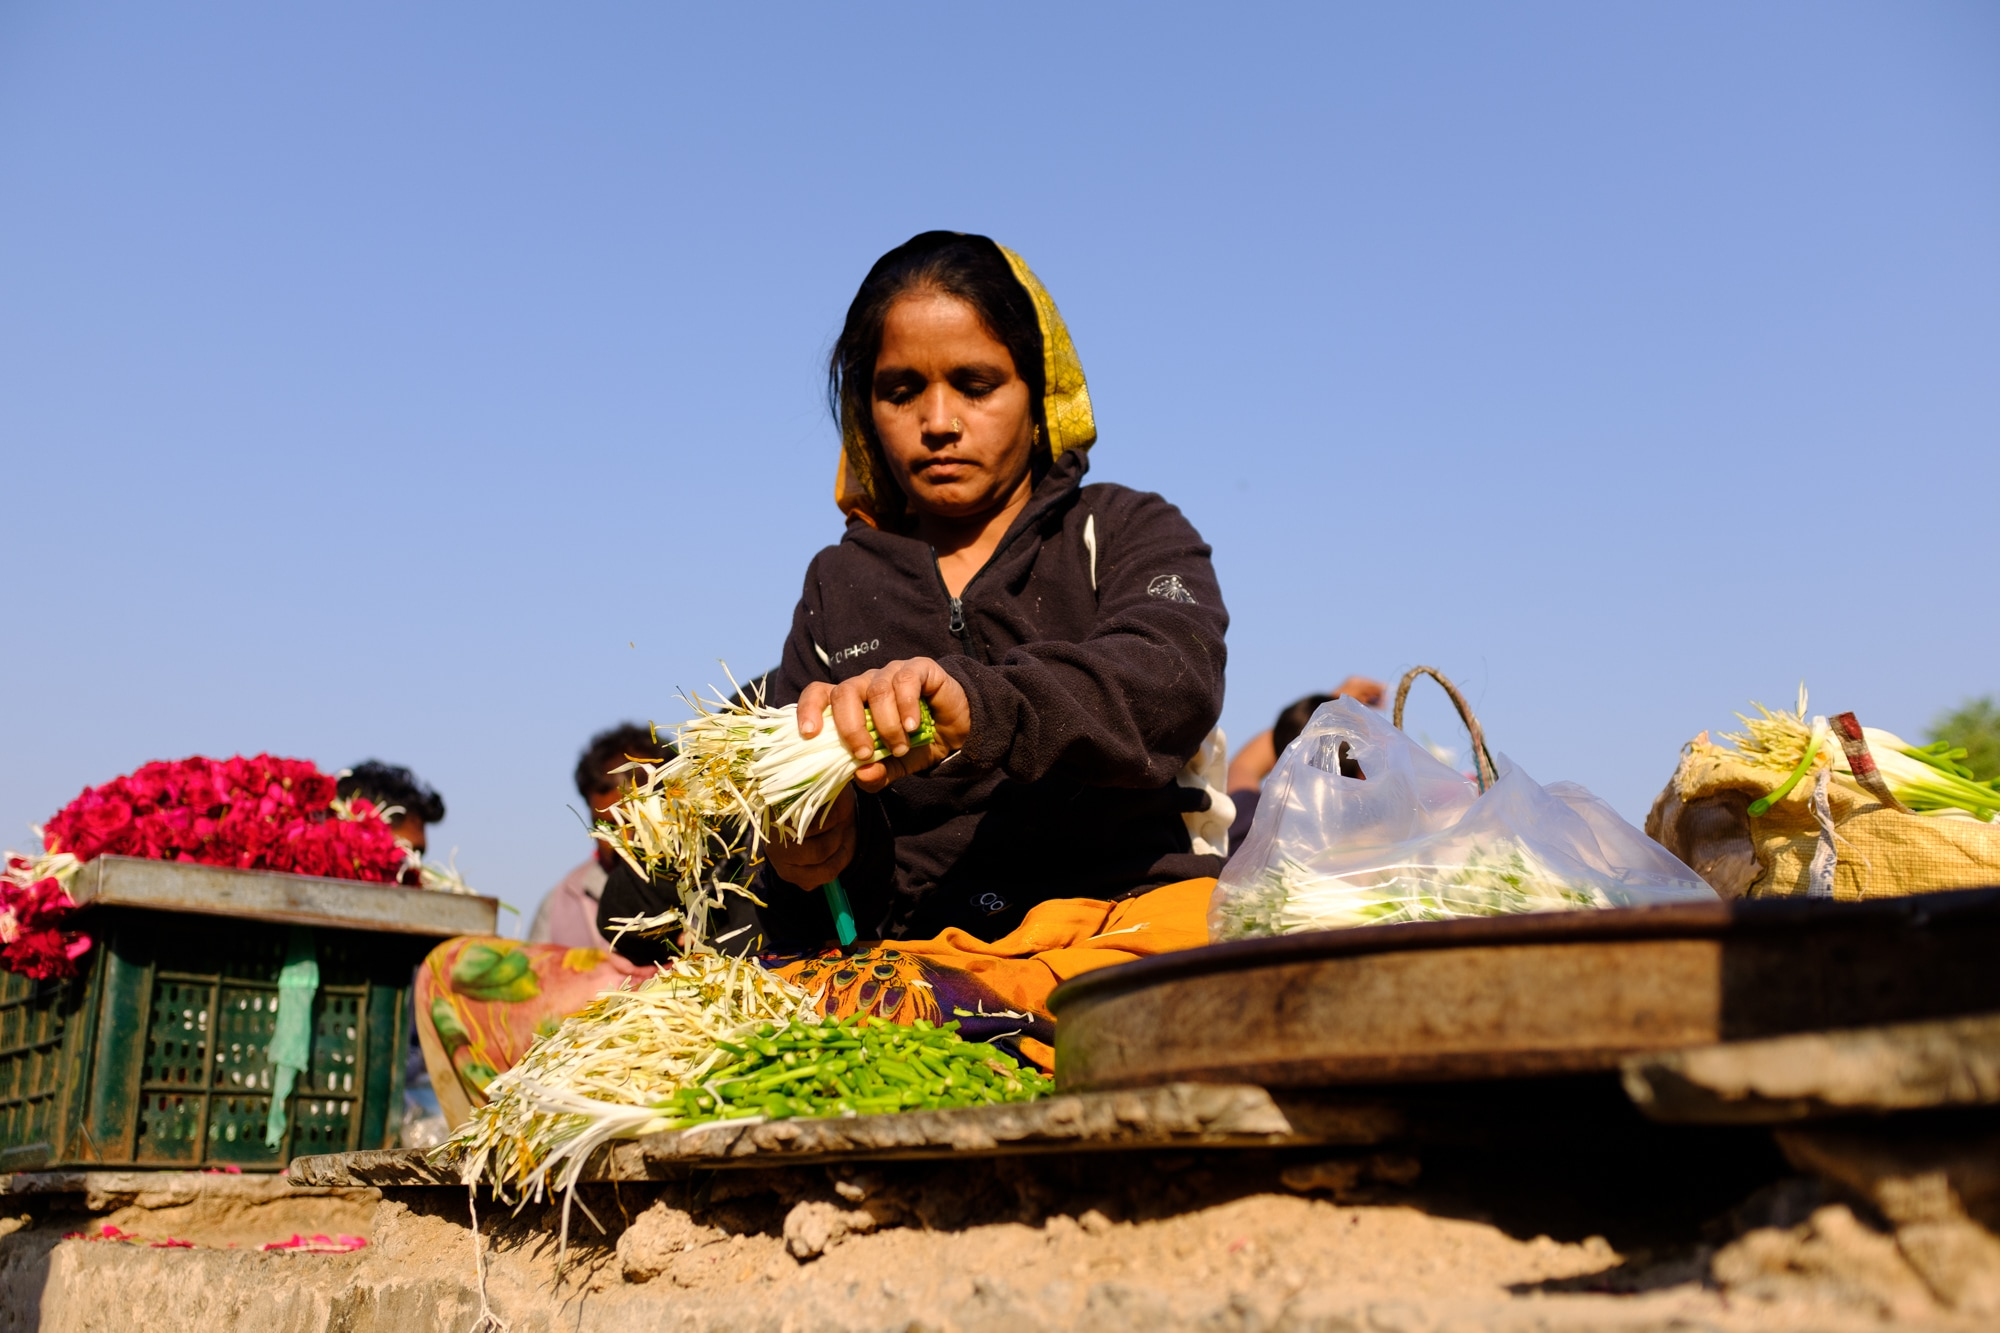 A woman working at Jamalpur flower market, Ahmedabad